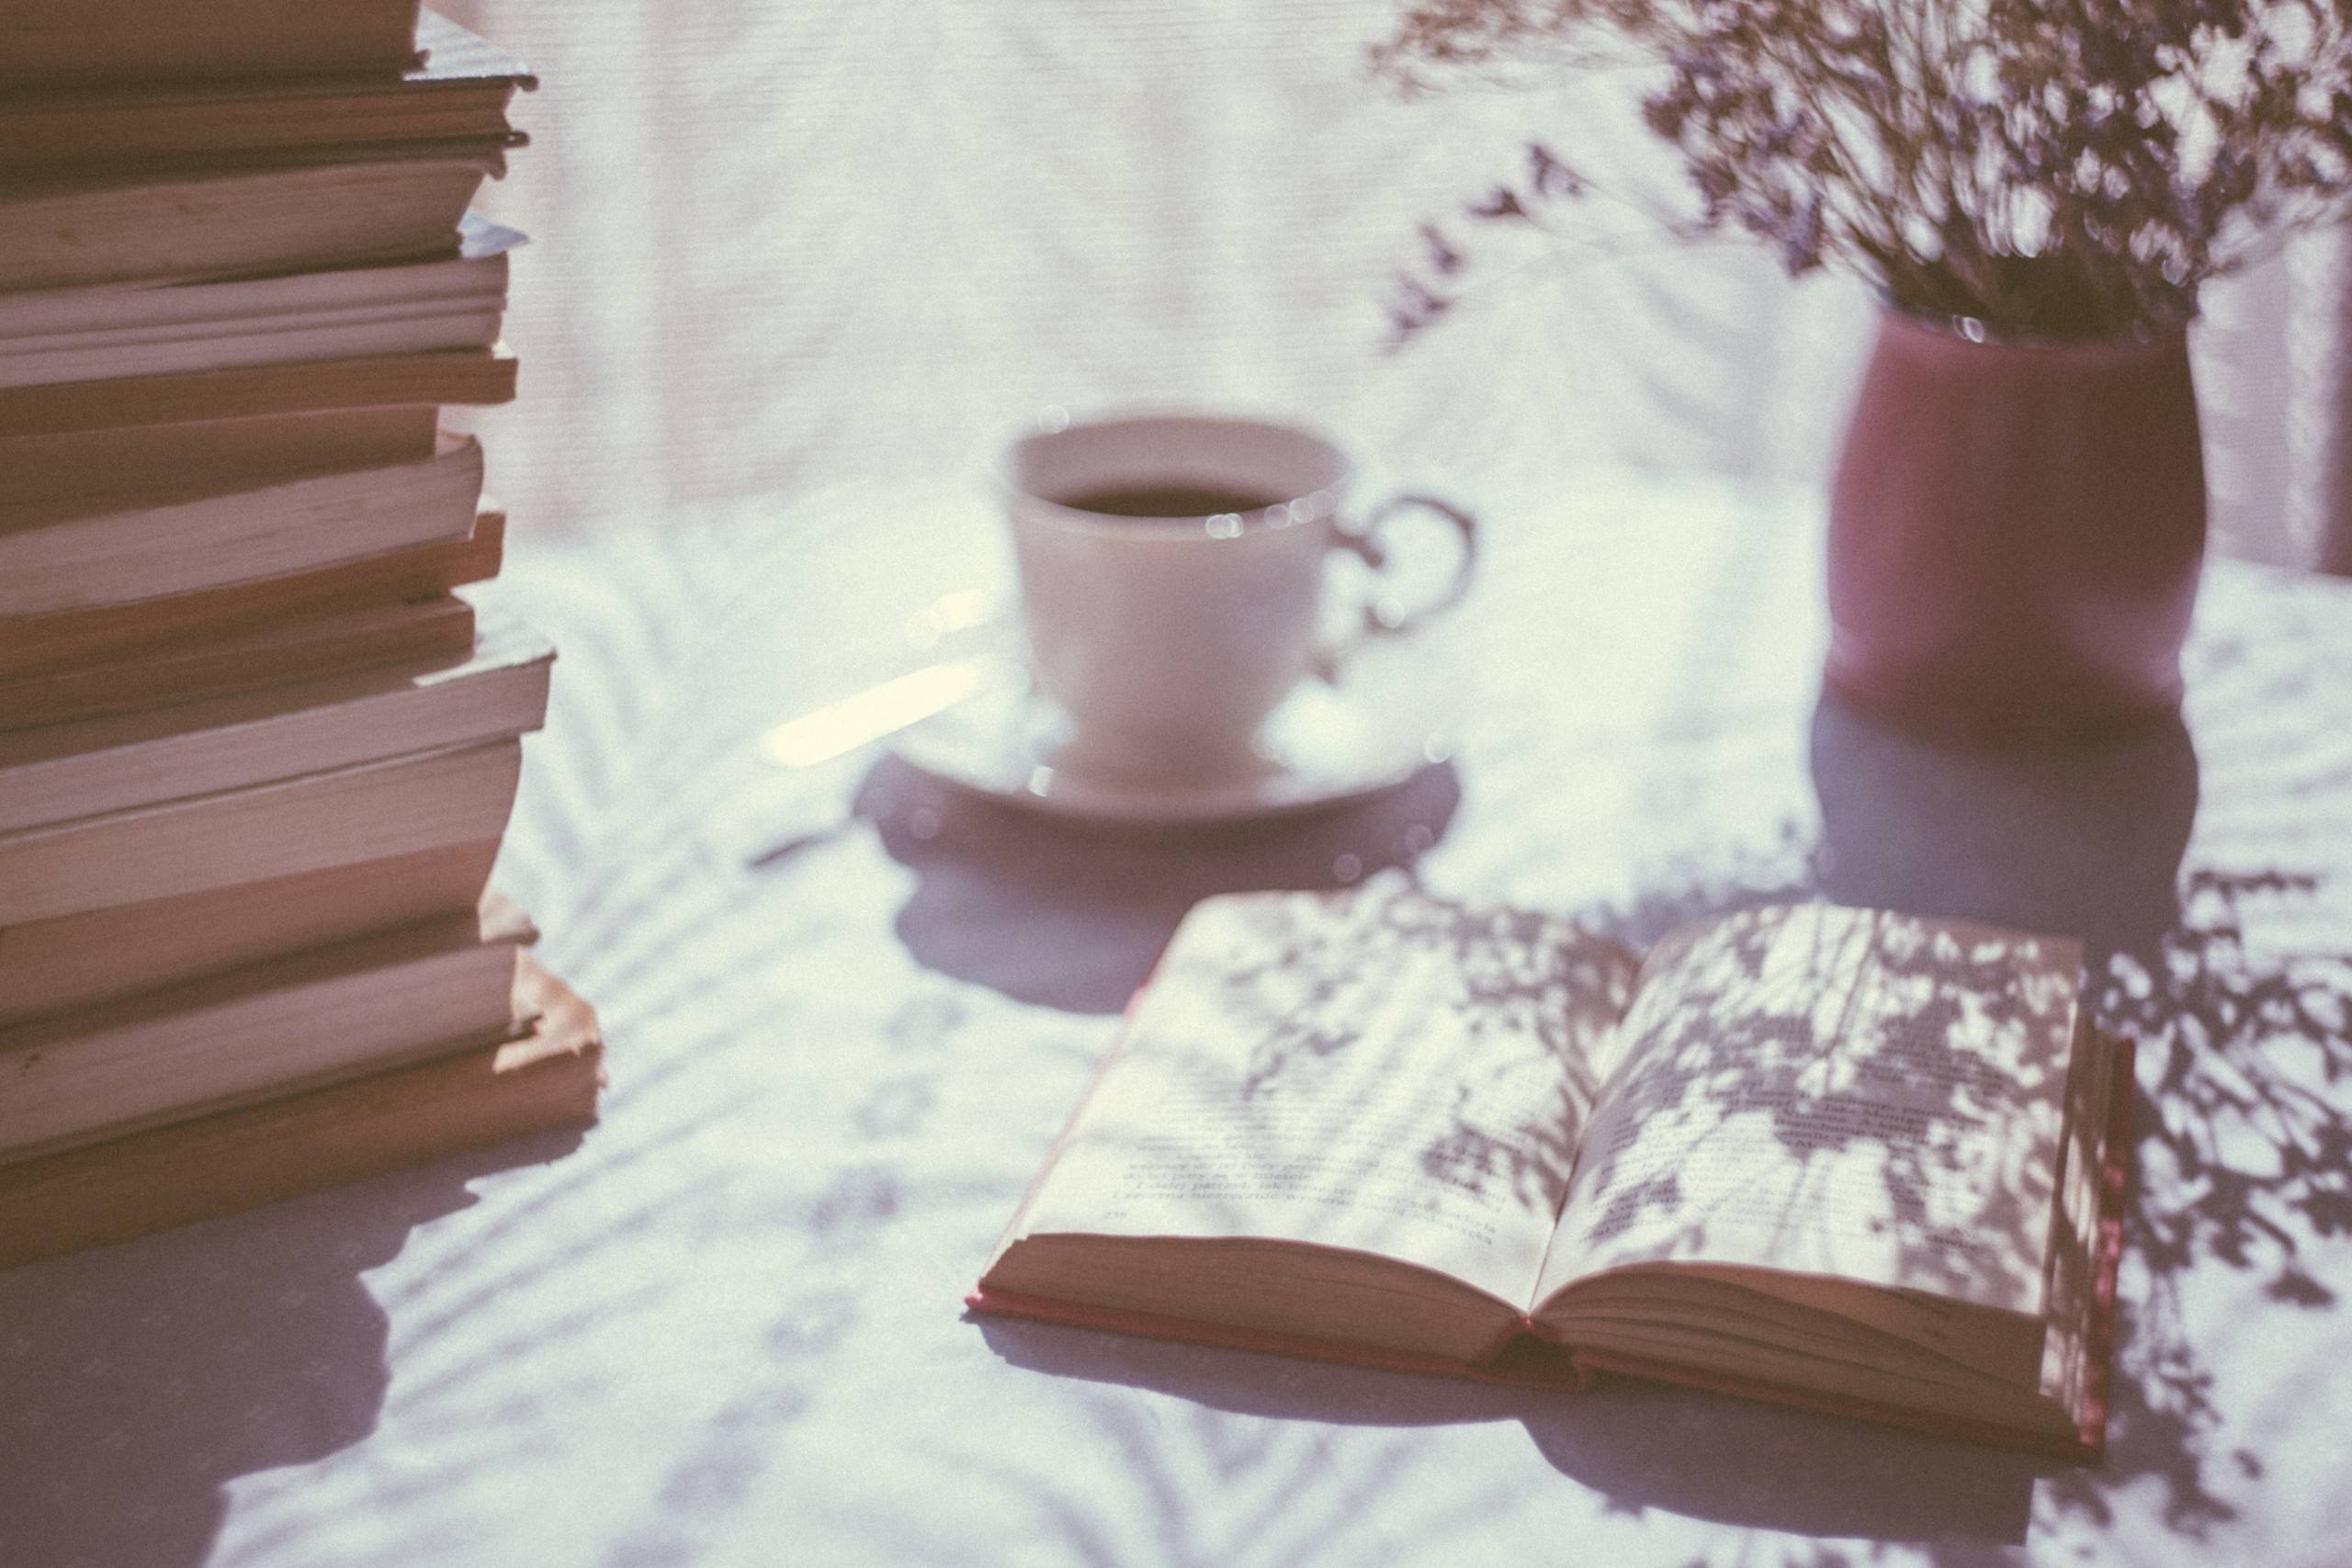 9 Empowering Reads For International Women's Day